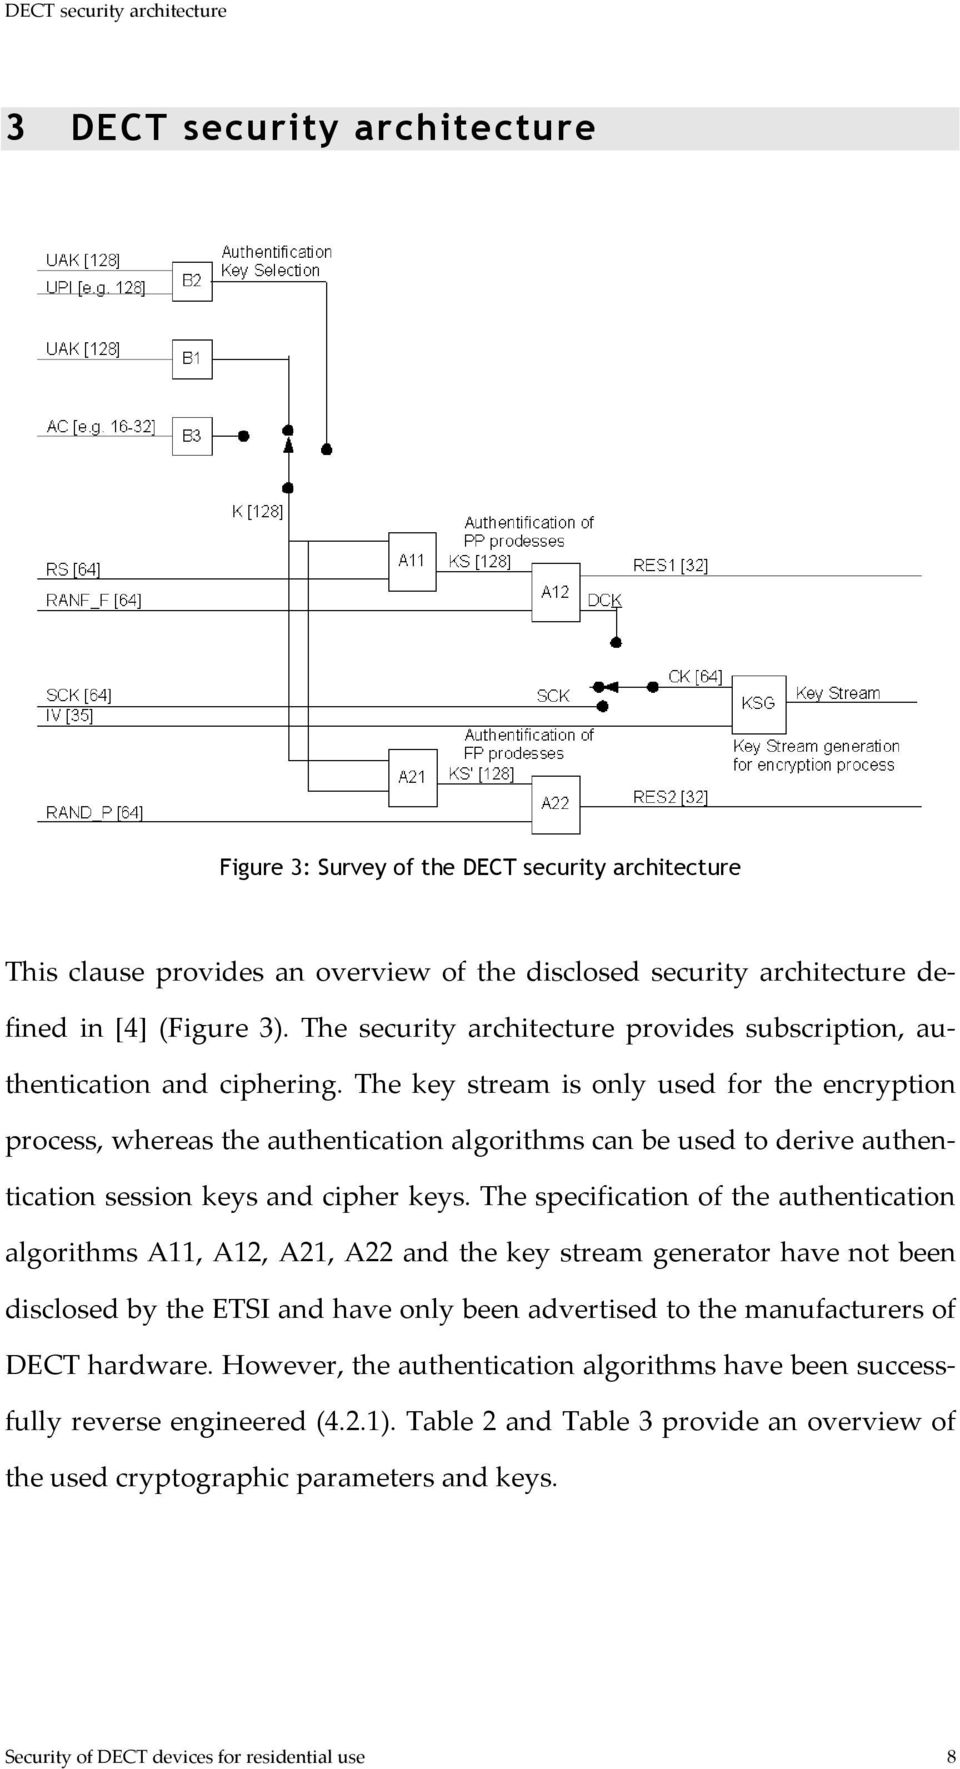 The key stream is only used for the encryption process, whereas the authentication algorithms can be used to derive authentication session keys and cipher keys.